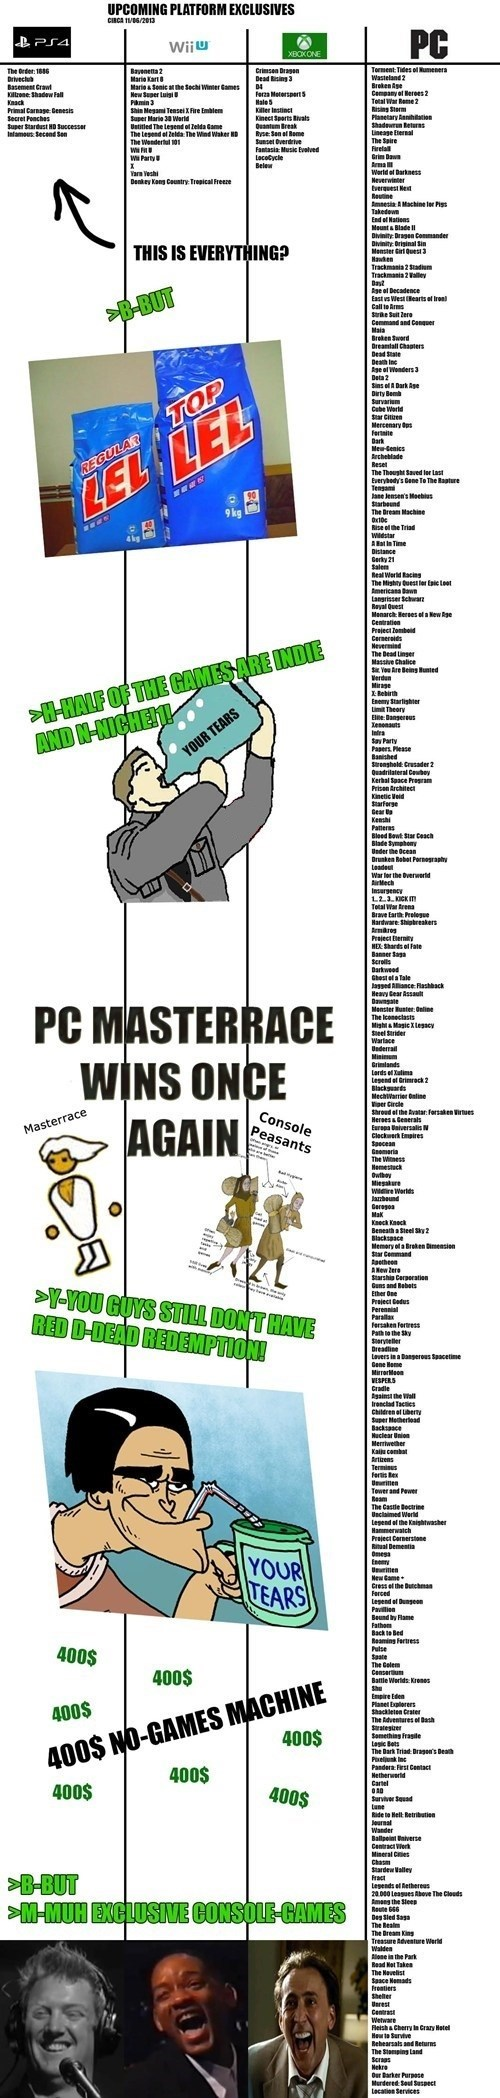 pc games consoles video games - 7865140992